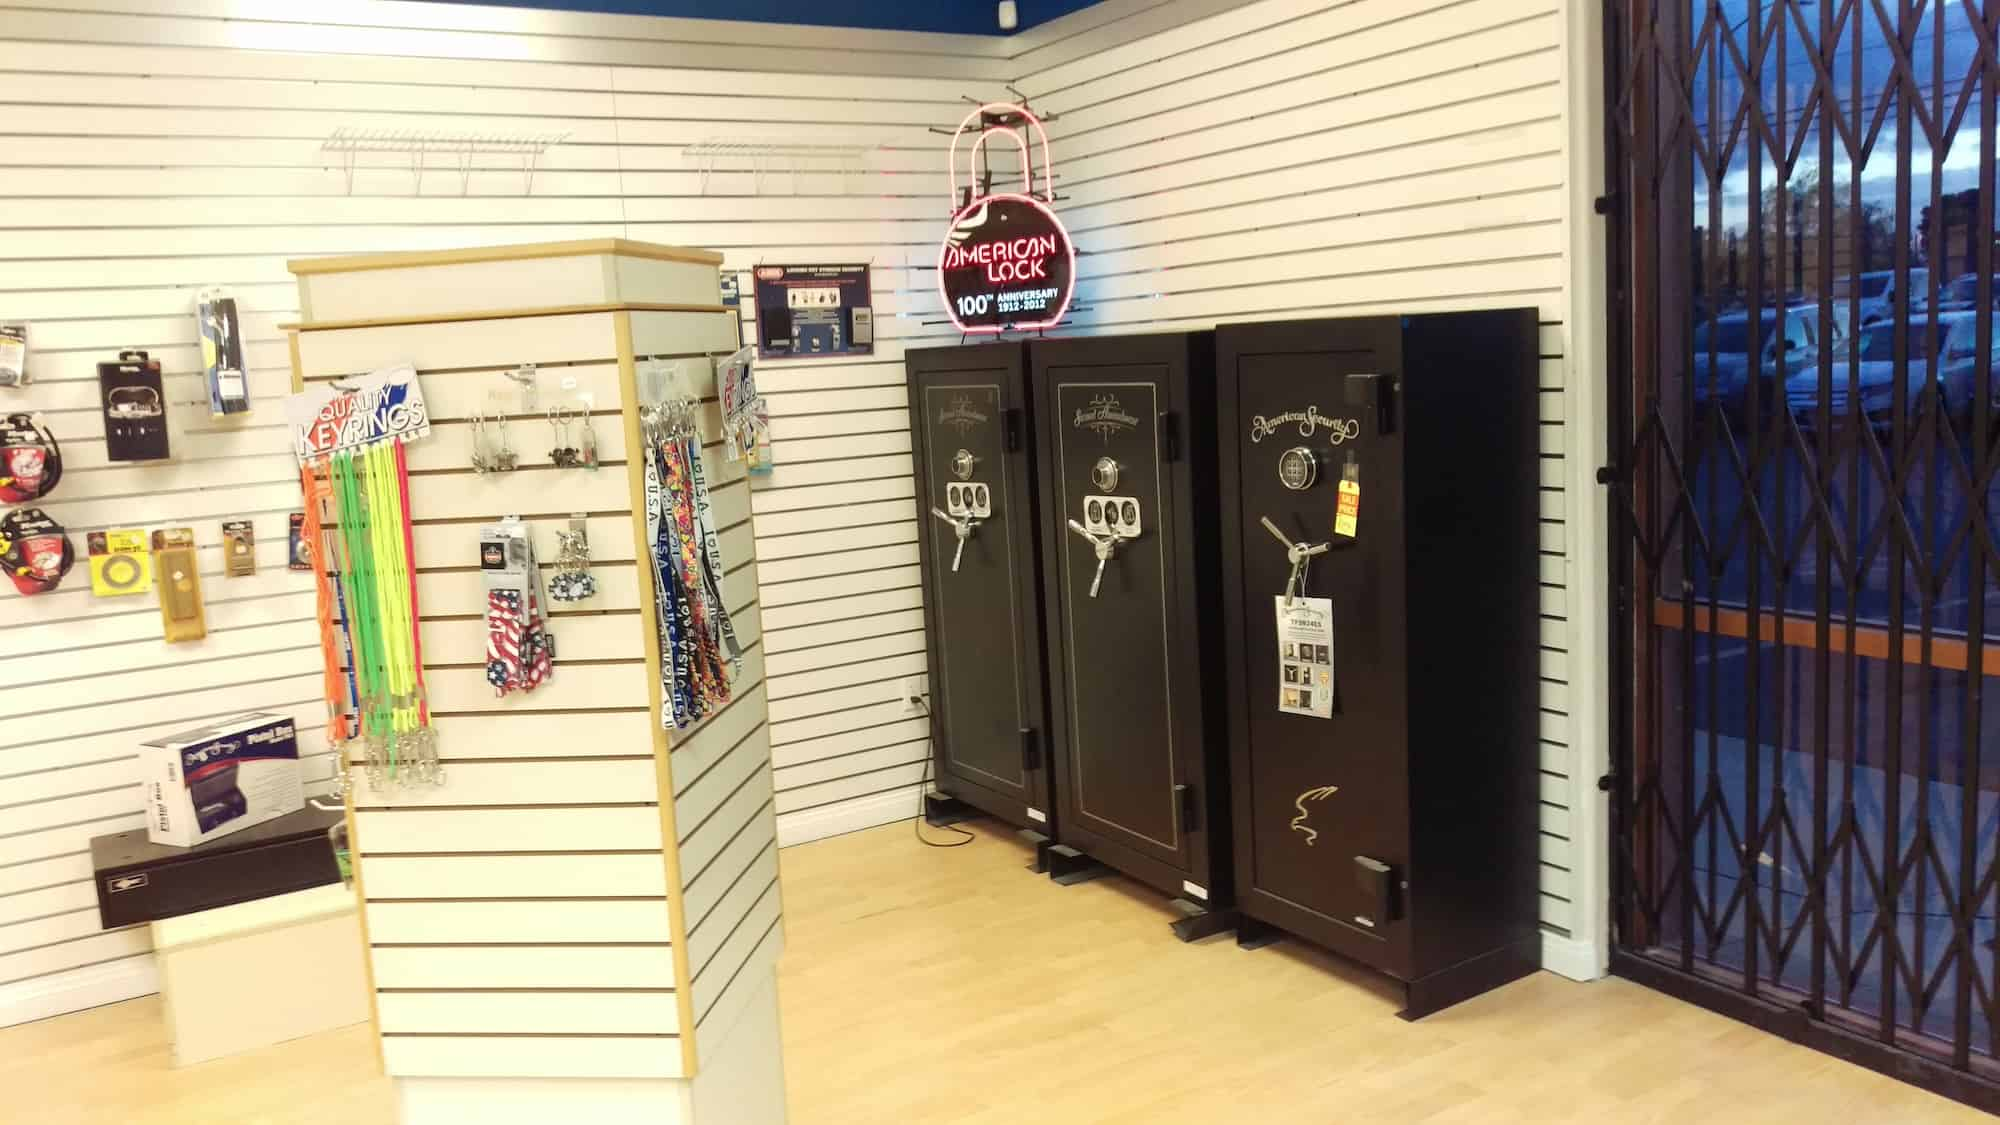 image of some safes inside Lockmaster's retail location